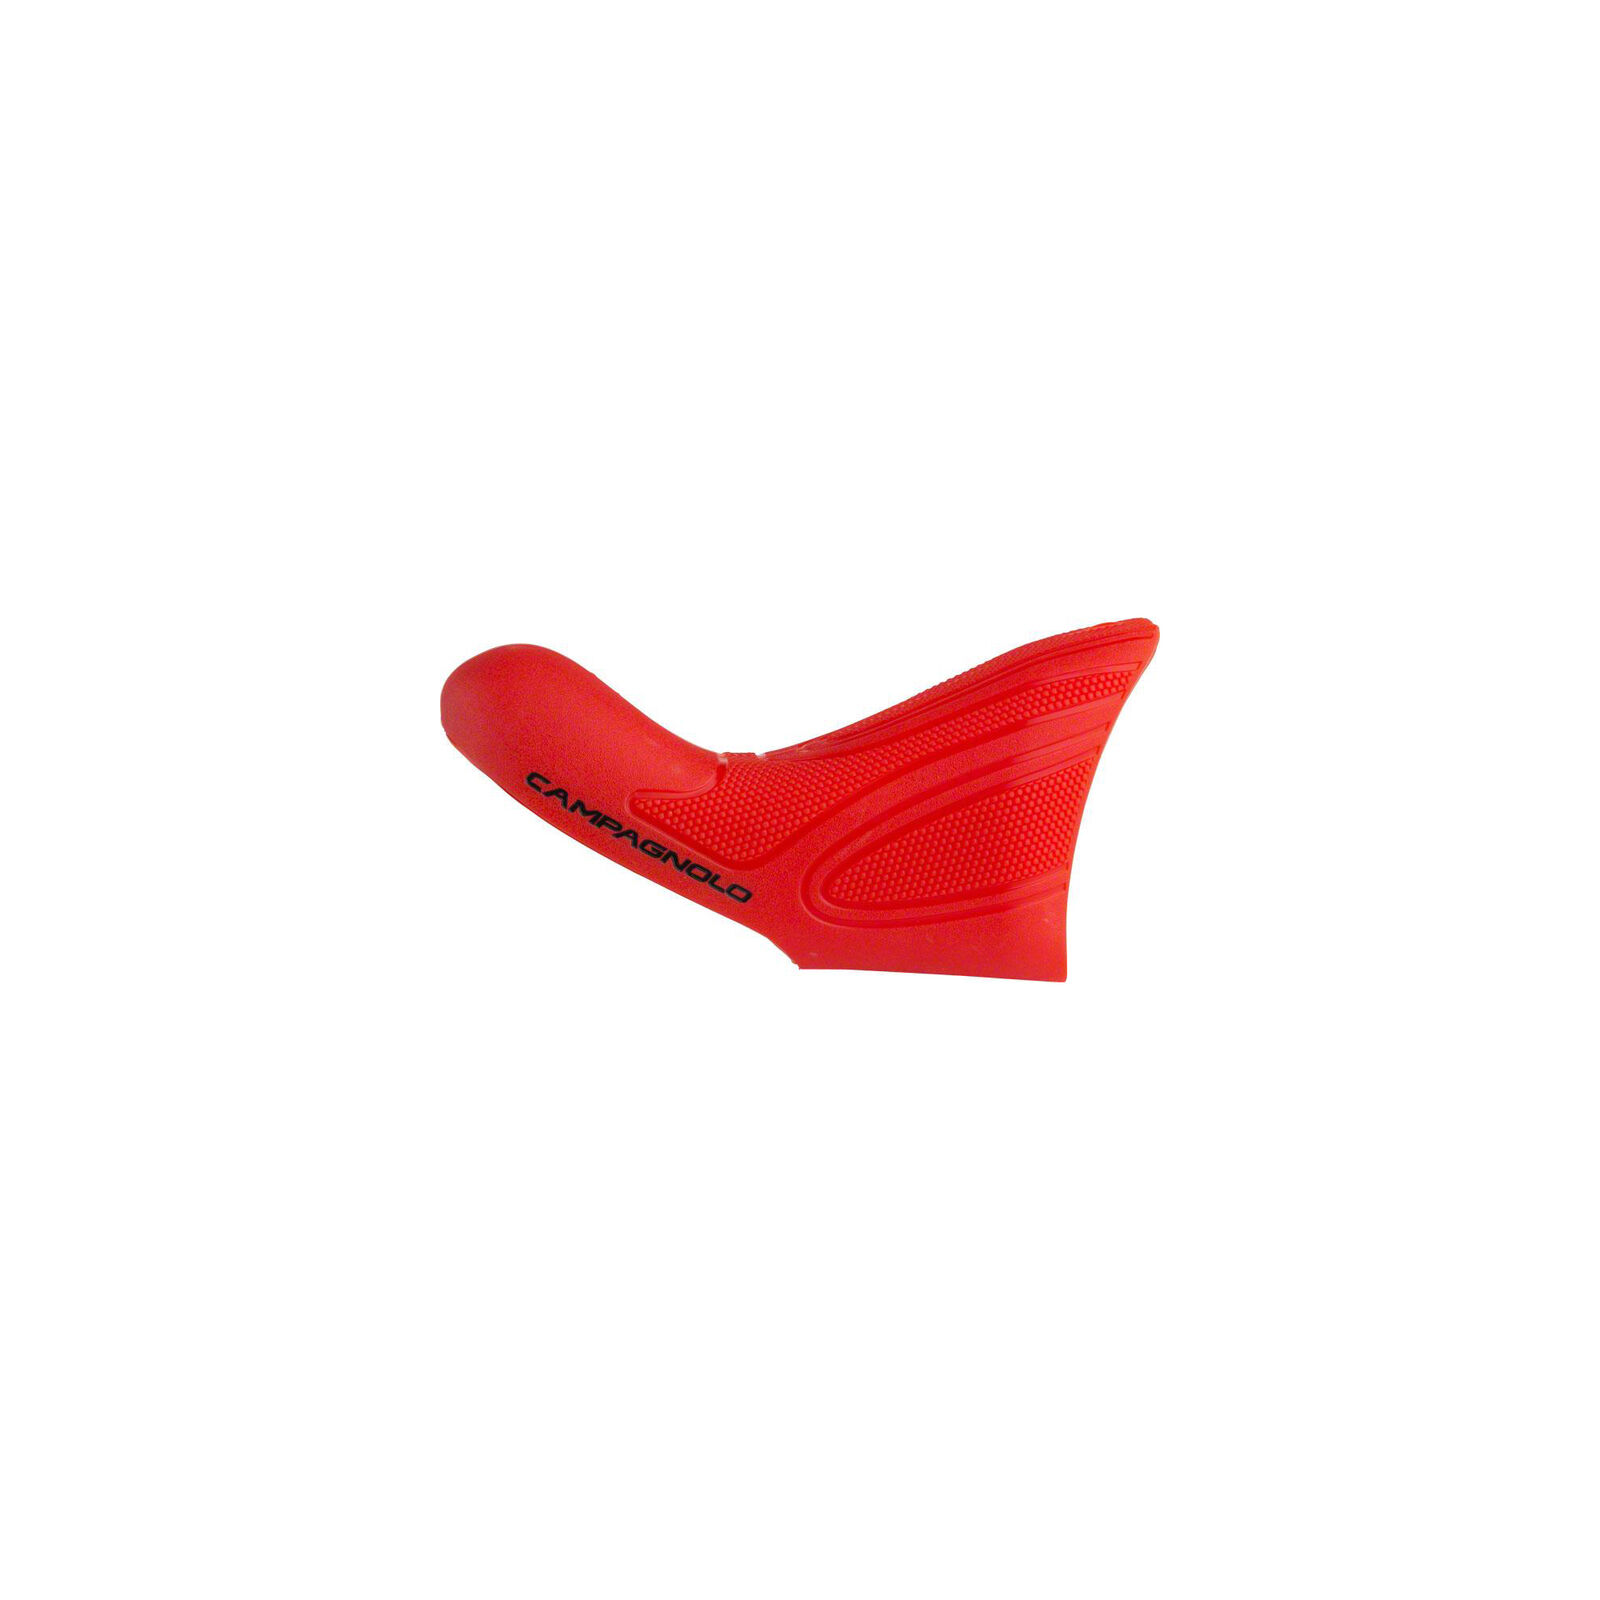 Campagnolo Ultra-Shift Lever Hoods for 2015 and later, later, later, rosso, Pair cc81c2